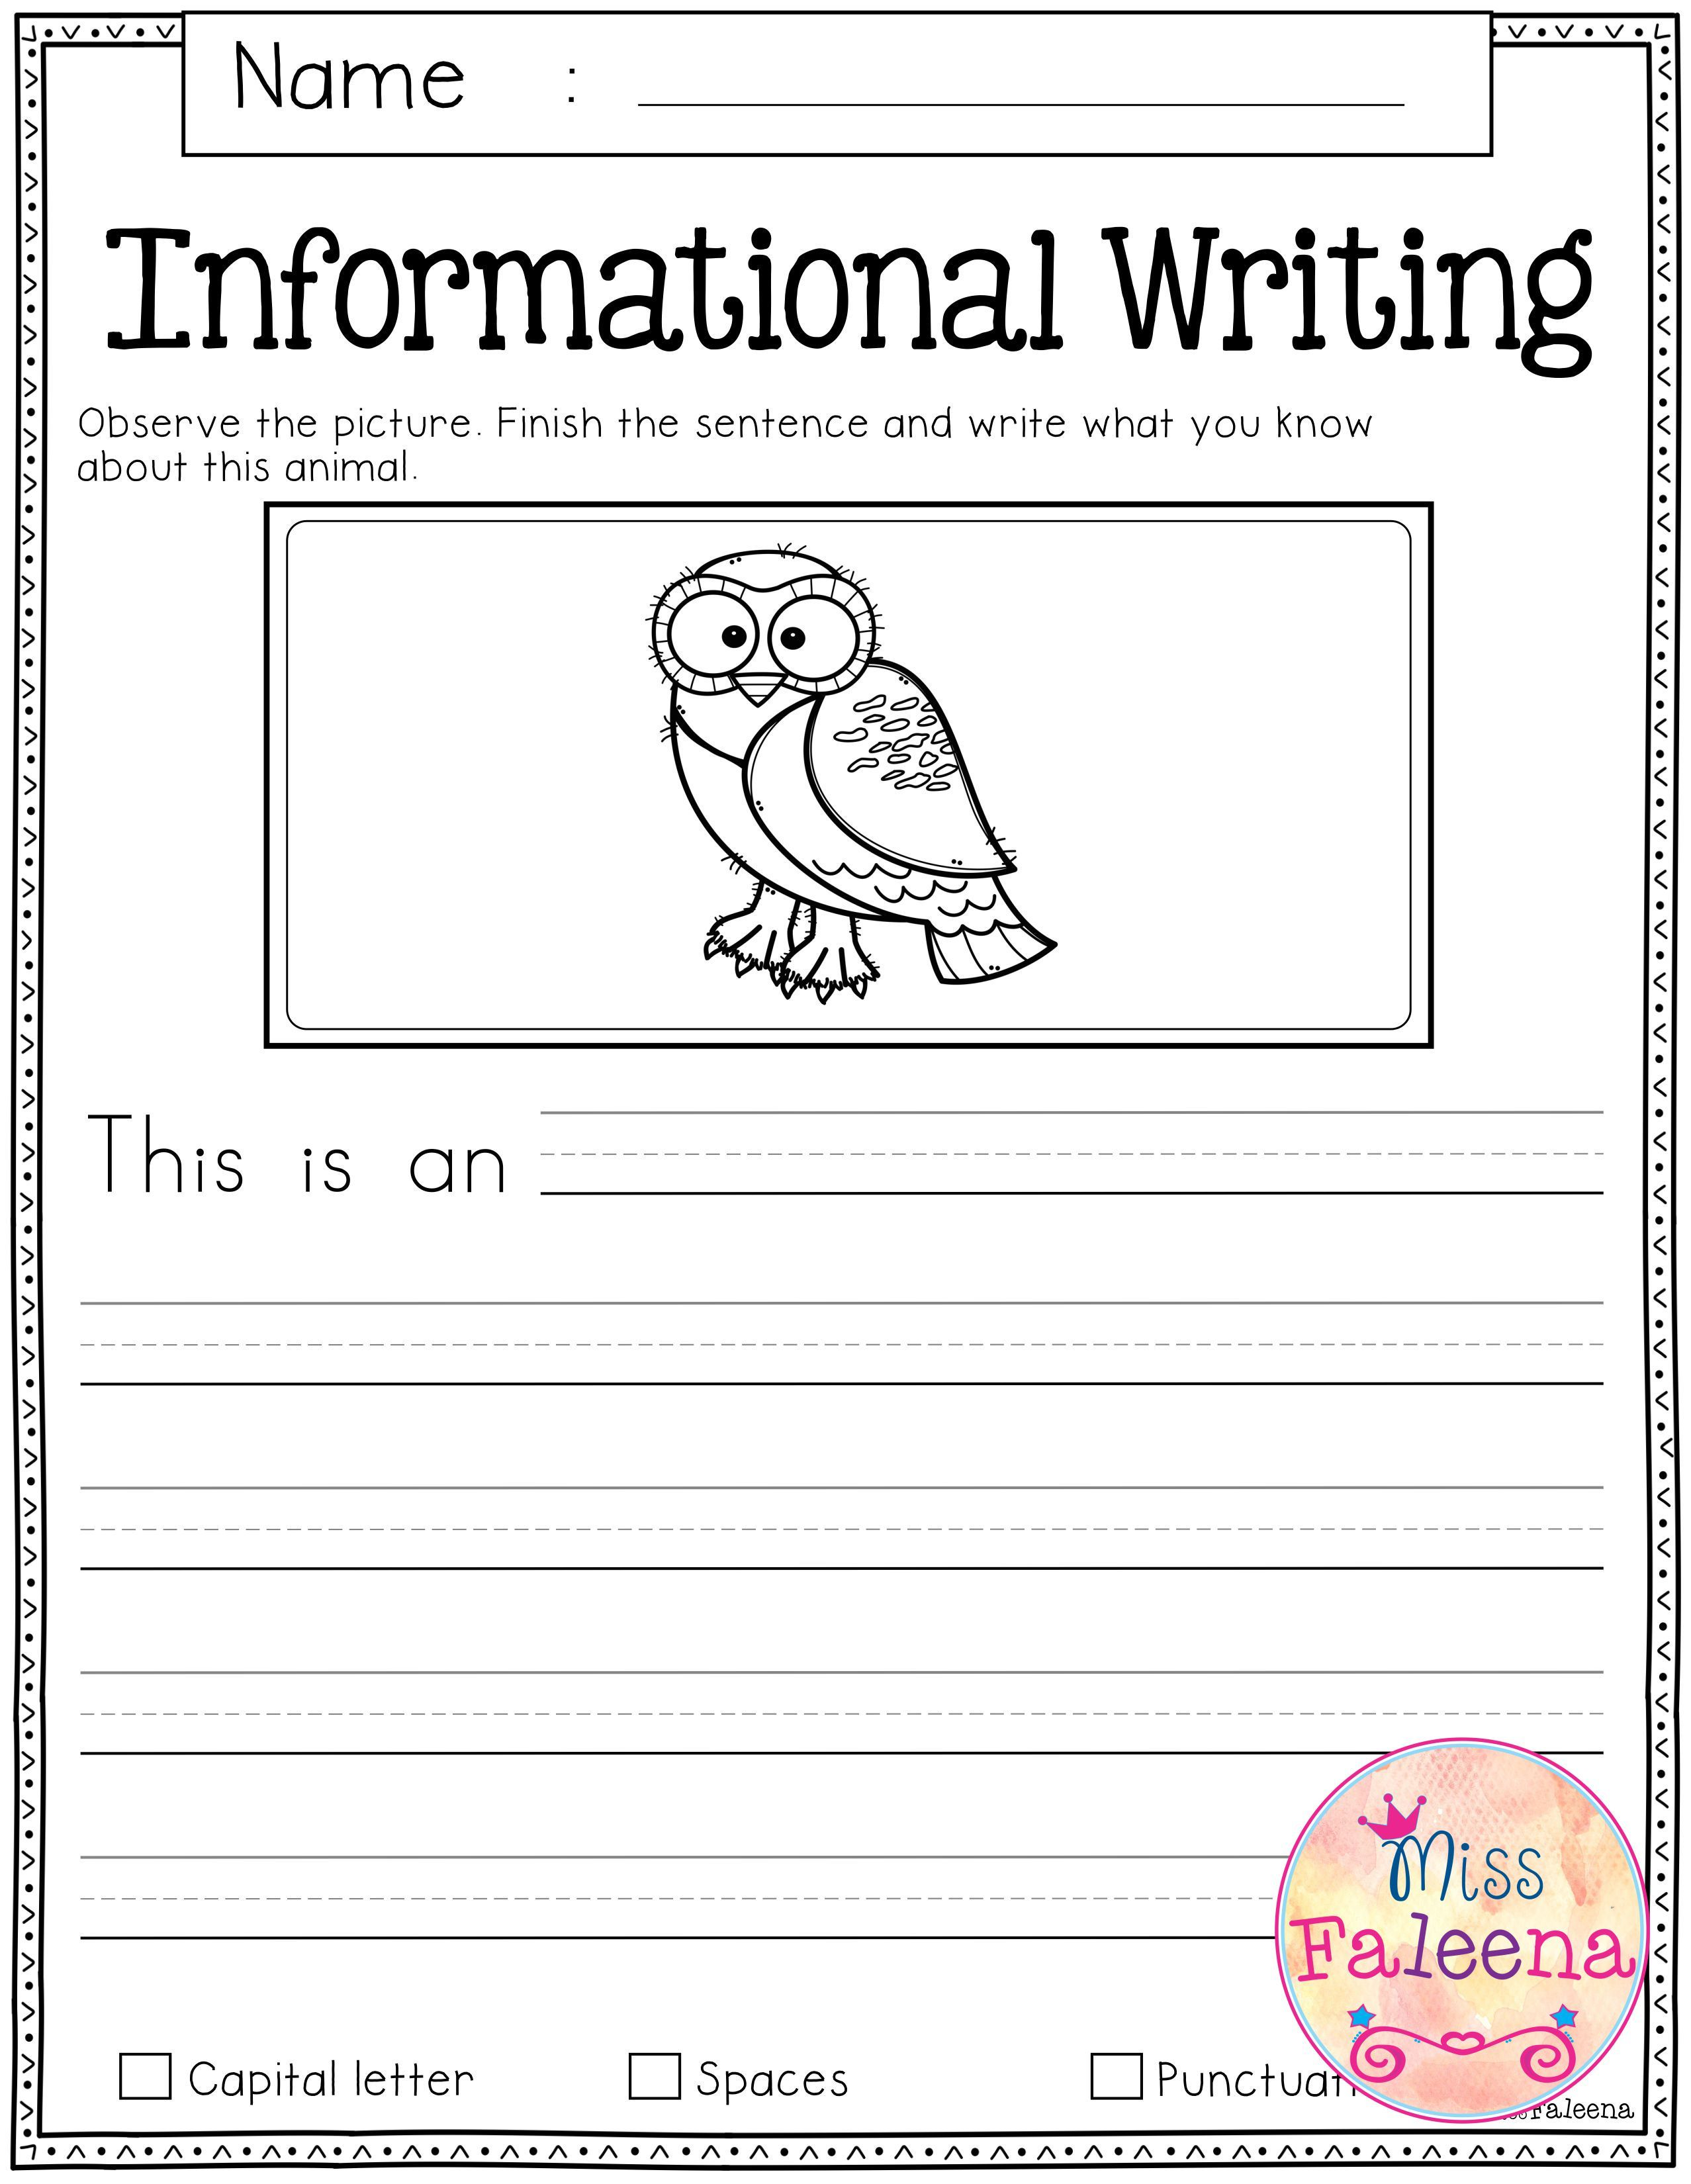 September Writing Prompts Writing Prompts For Kids